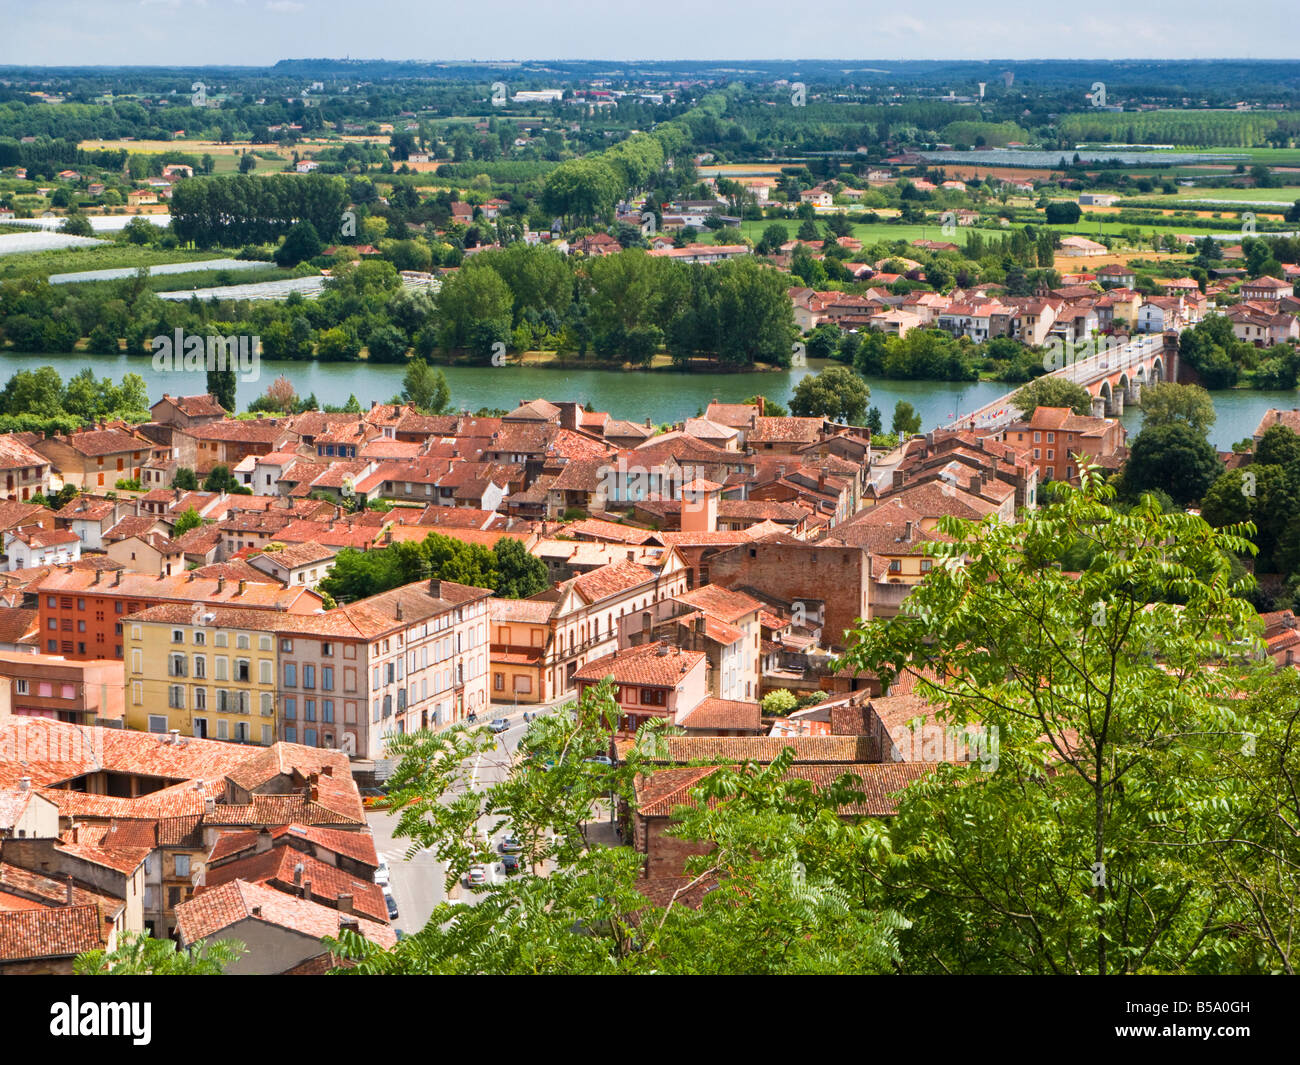 Historic town of Moissac and Pont Napoleon on the River Tarn, Tarn et Garonne, France, Europe - Stock Image